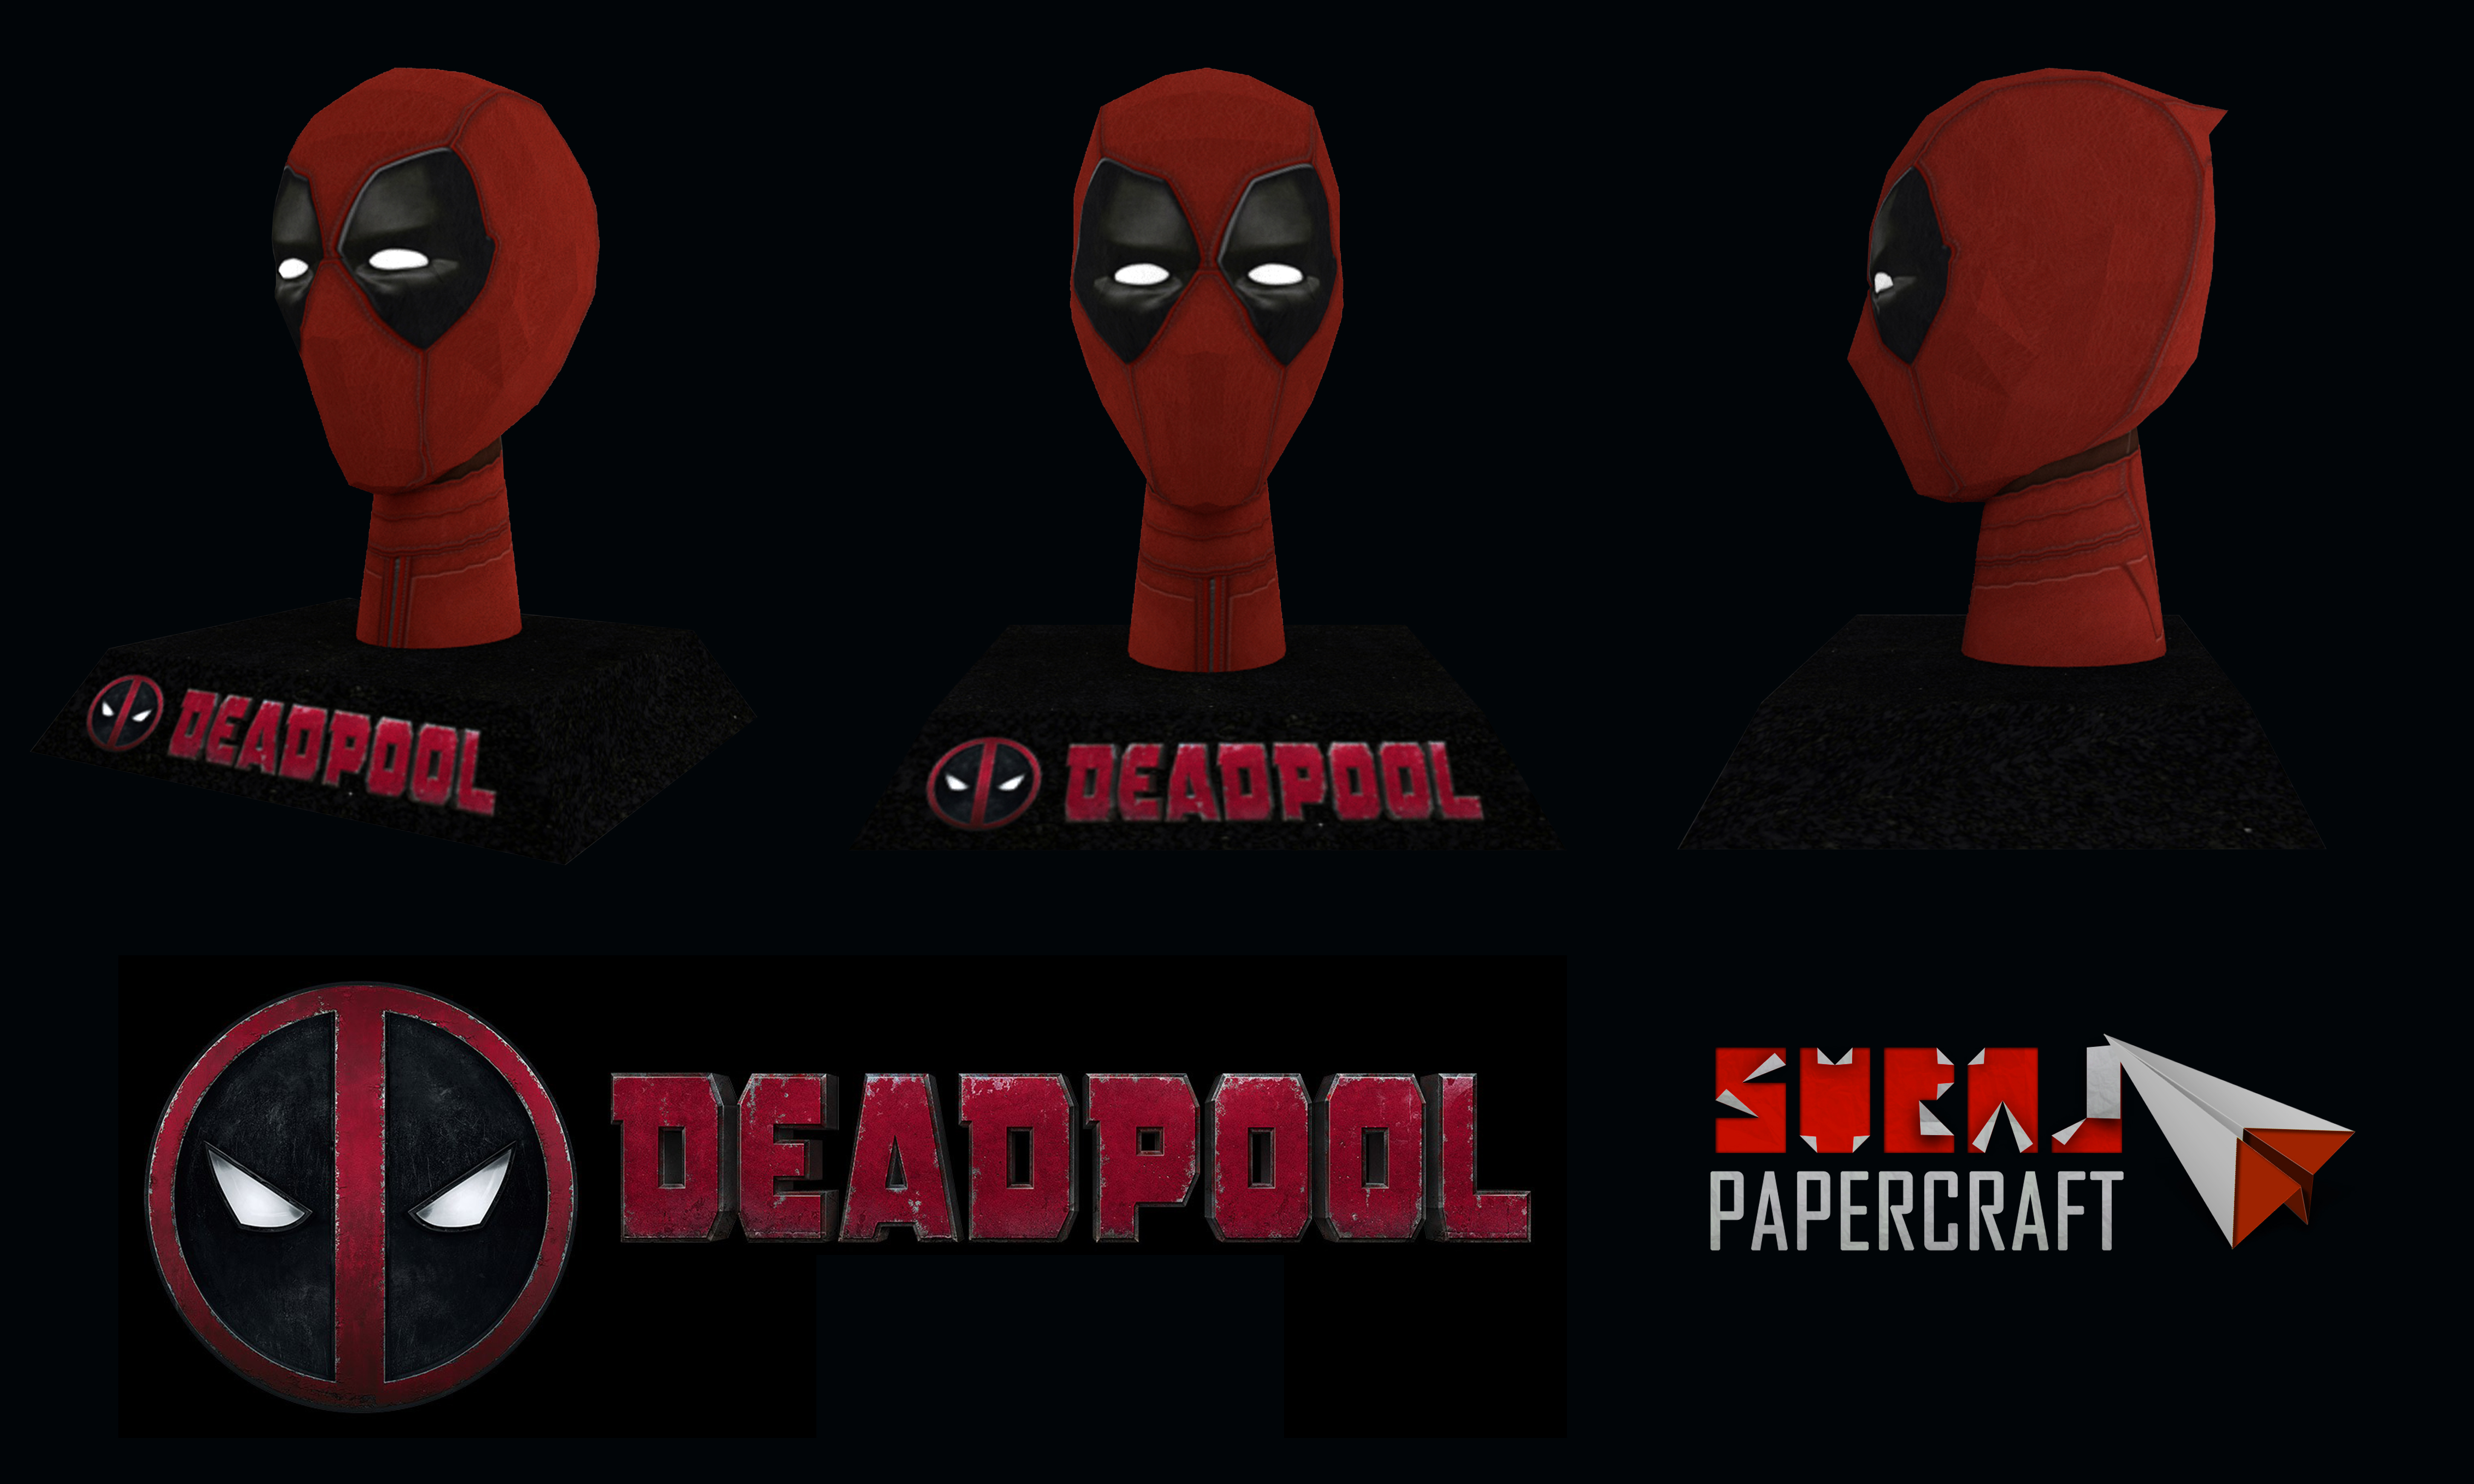 Deadpool Movie Papercraft - Head with Stand by suraj281191